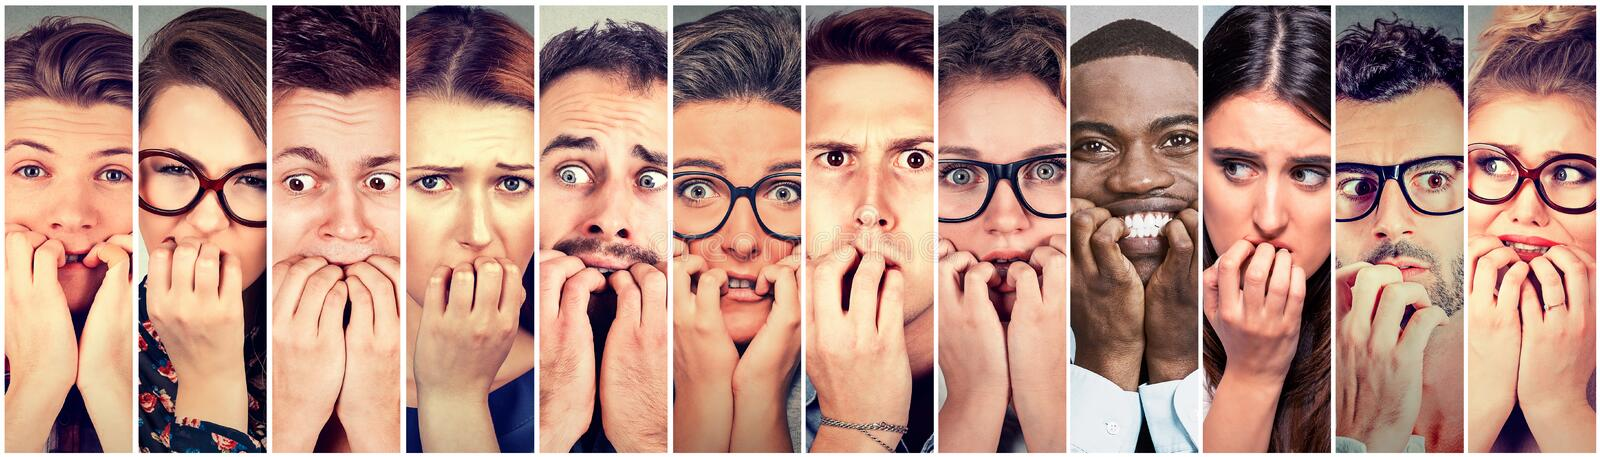 Group of multiethnic anxious people biting fingernails nervous stressed royalty free stock photo